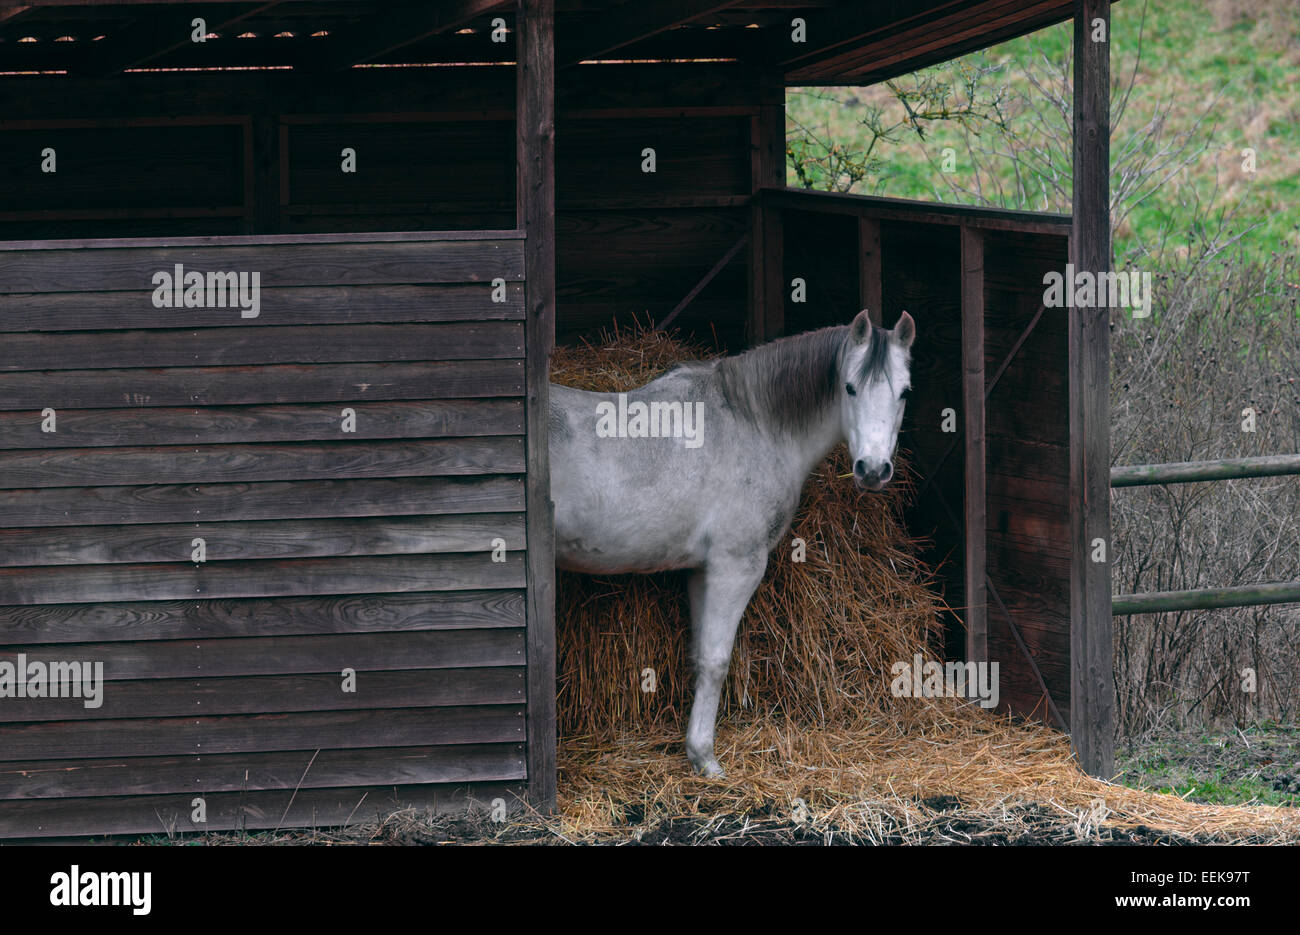 Dapple gray horse standing in shed looking straight at you. - Stock Image